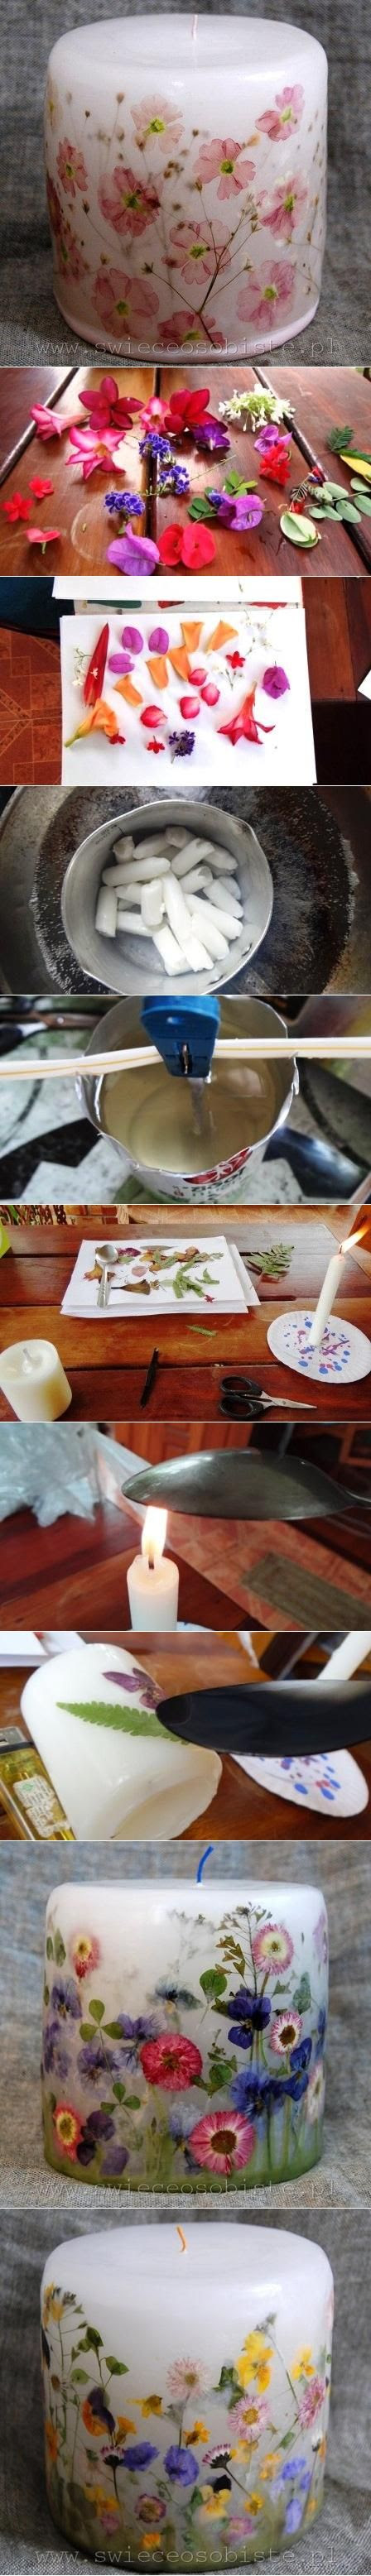 DIY Flower Candle